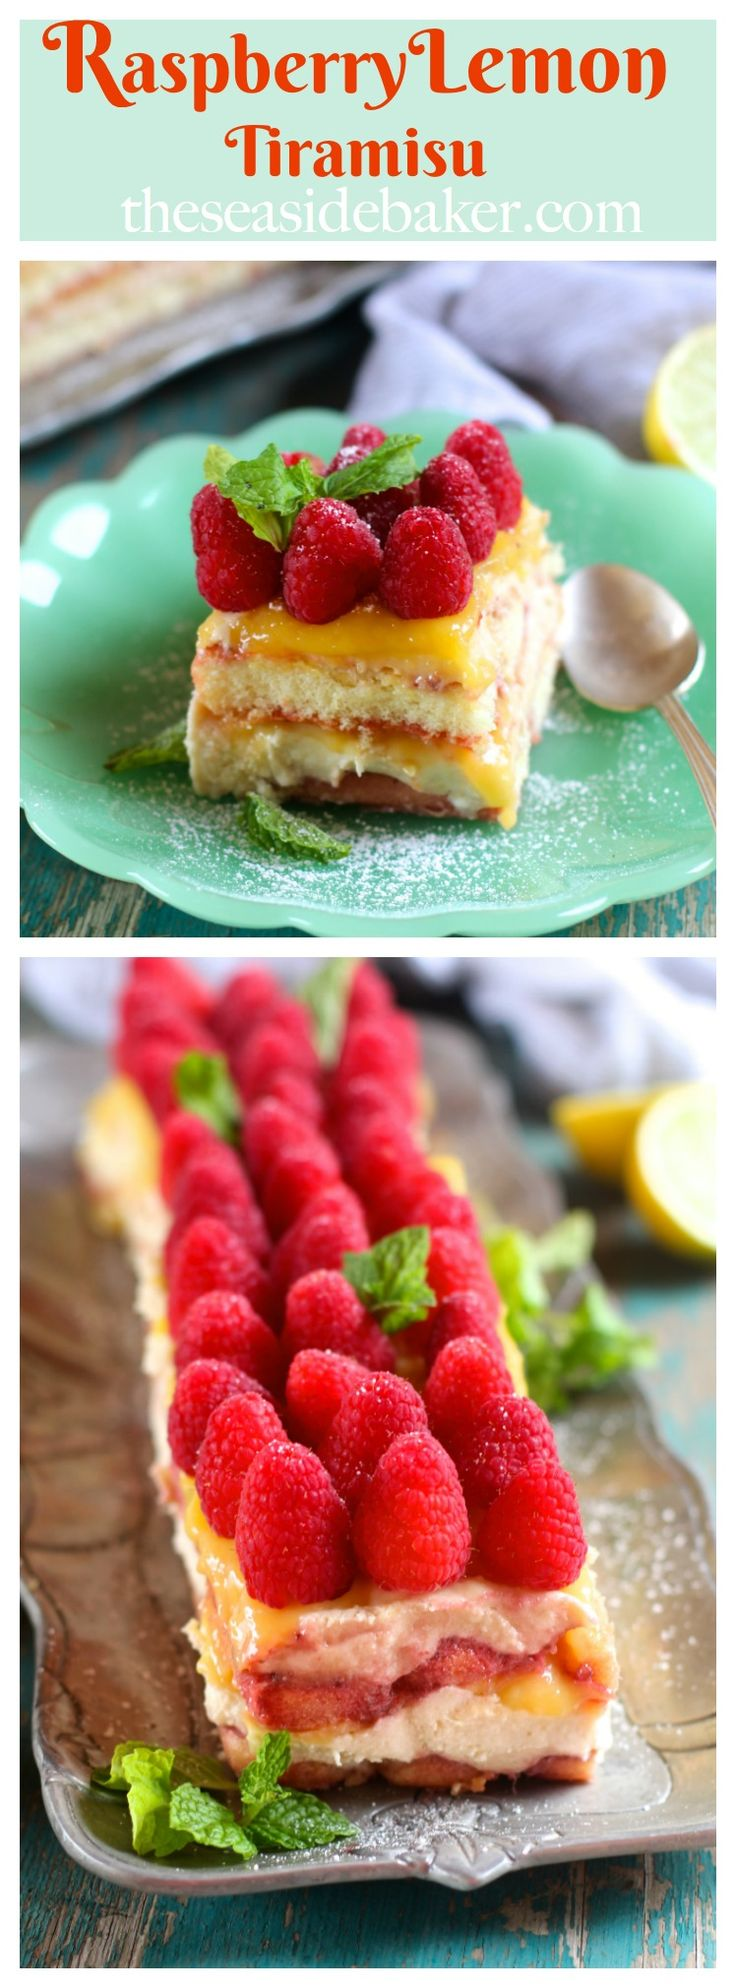 A fresh spin on an Italian classic, this easy Raspberry Meyer Lemon Curd Tiramisu will be perfect for your Spring entertaining